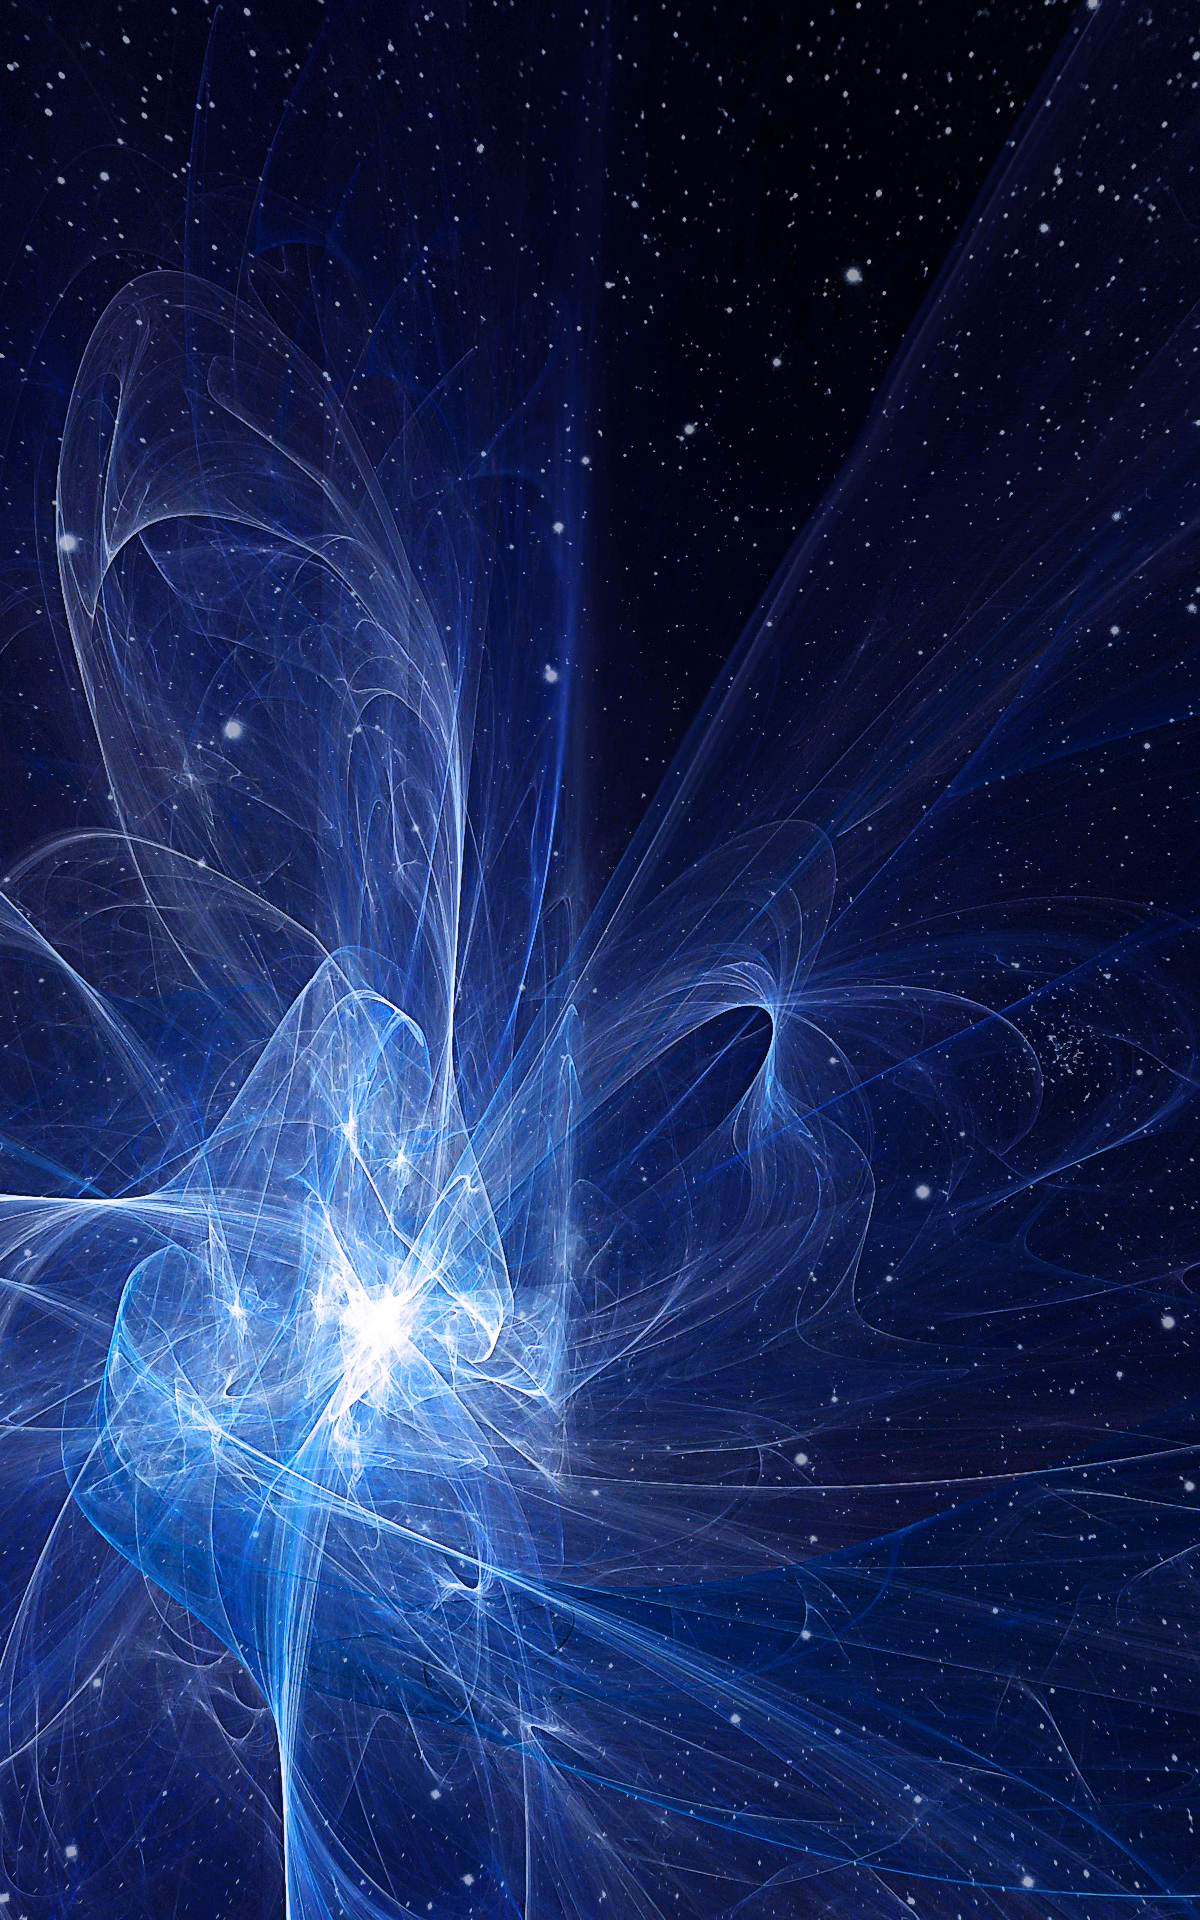 Digital light explosion in space with stars for your desktop